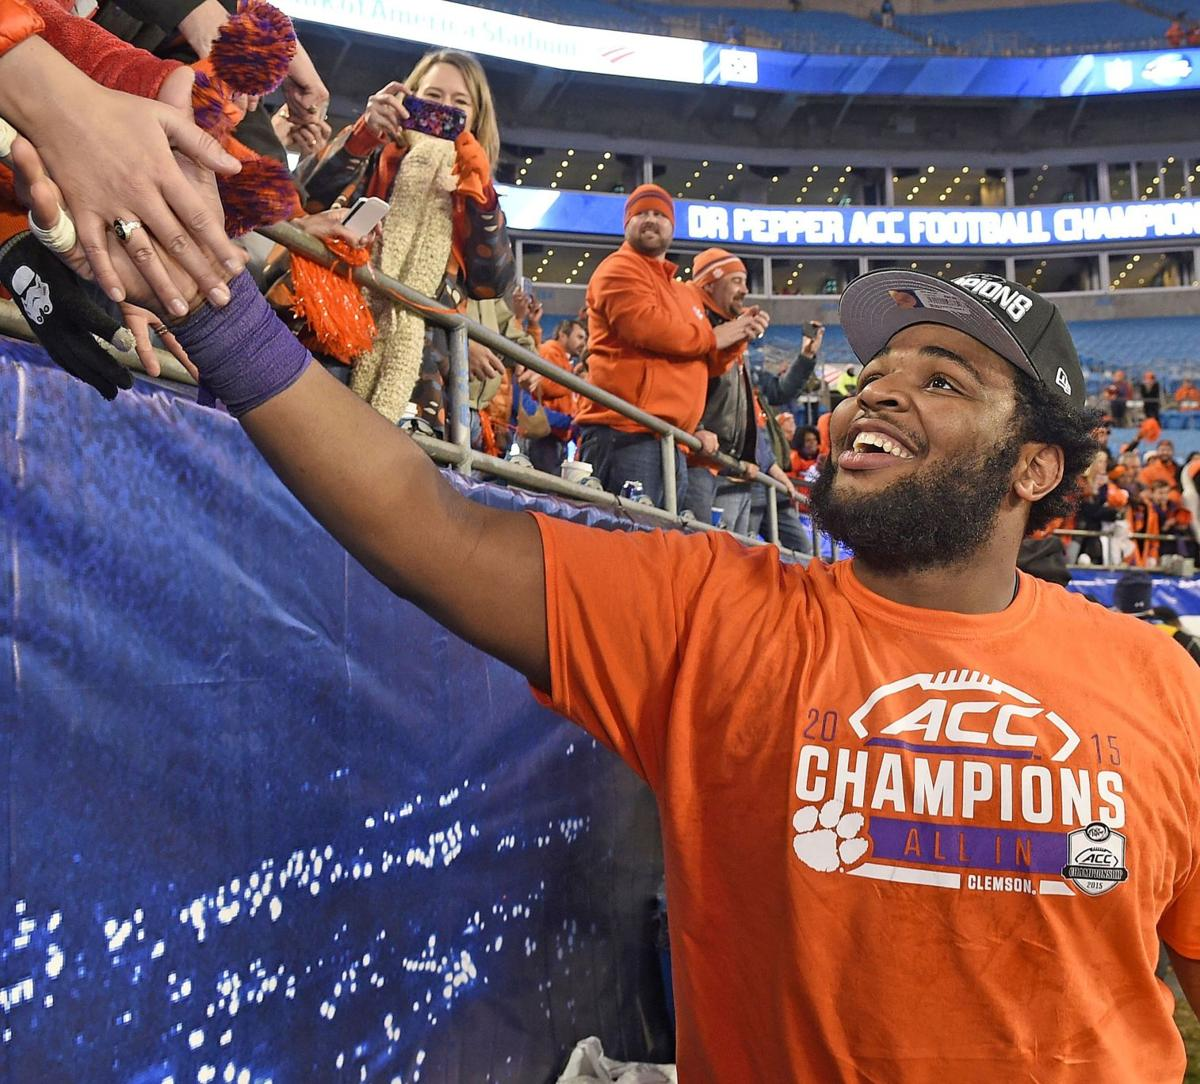 Top 10 Tigers 2016, No. 2: Christian Wilkins helps popularize Clemson on national scale